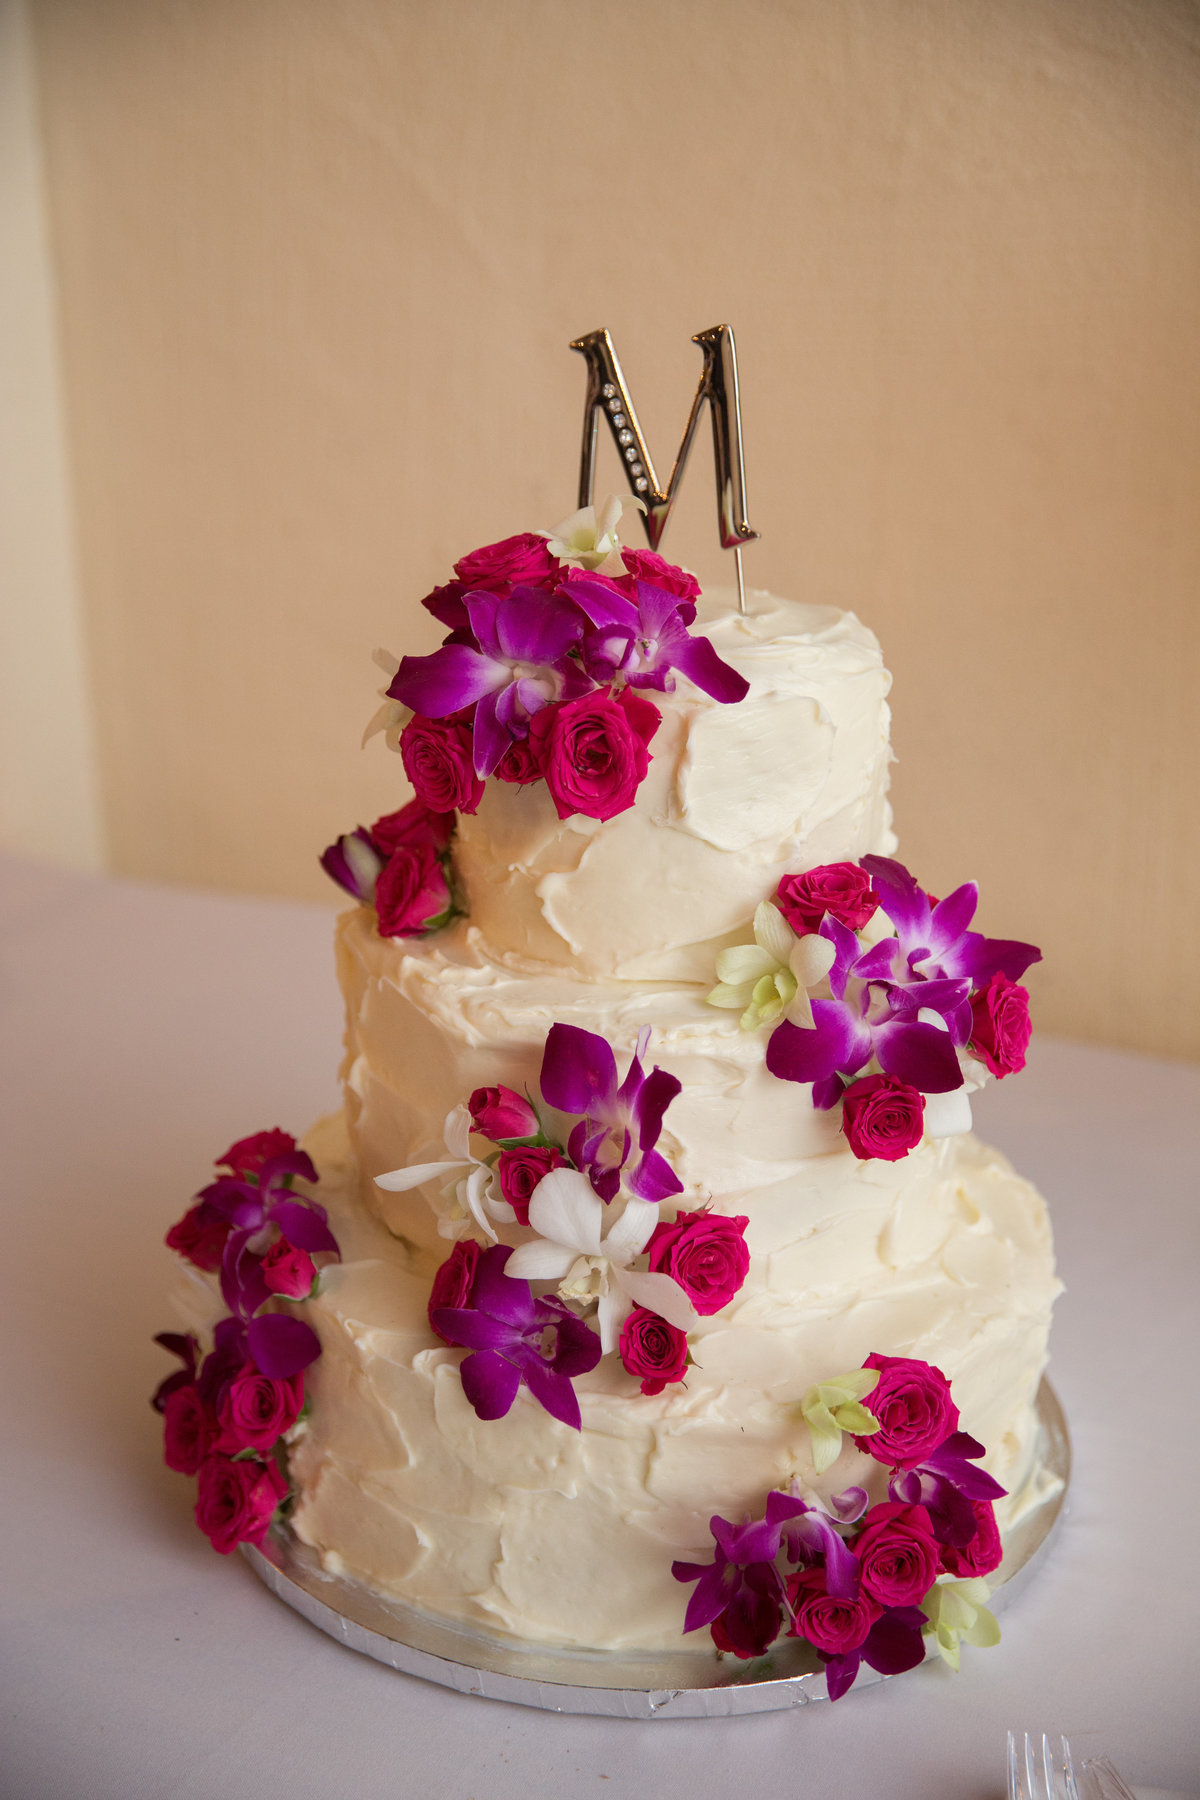 River Rock Event Center Texas Wedding Cake monogram fresh flowers